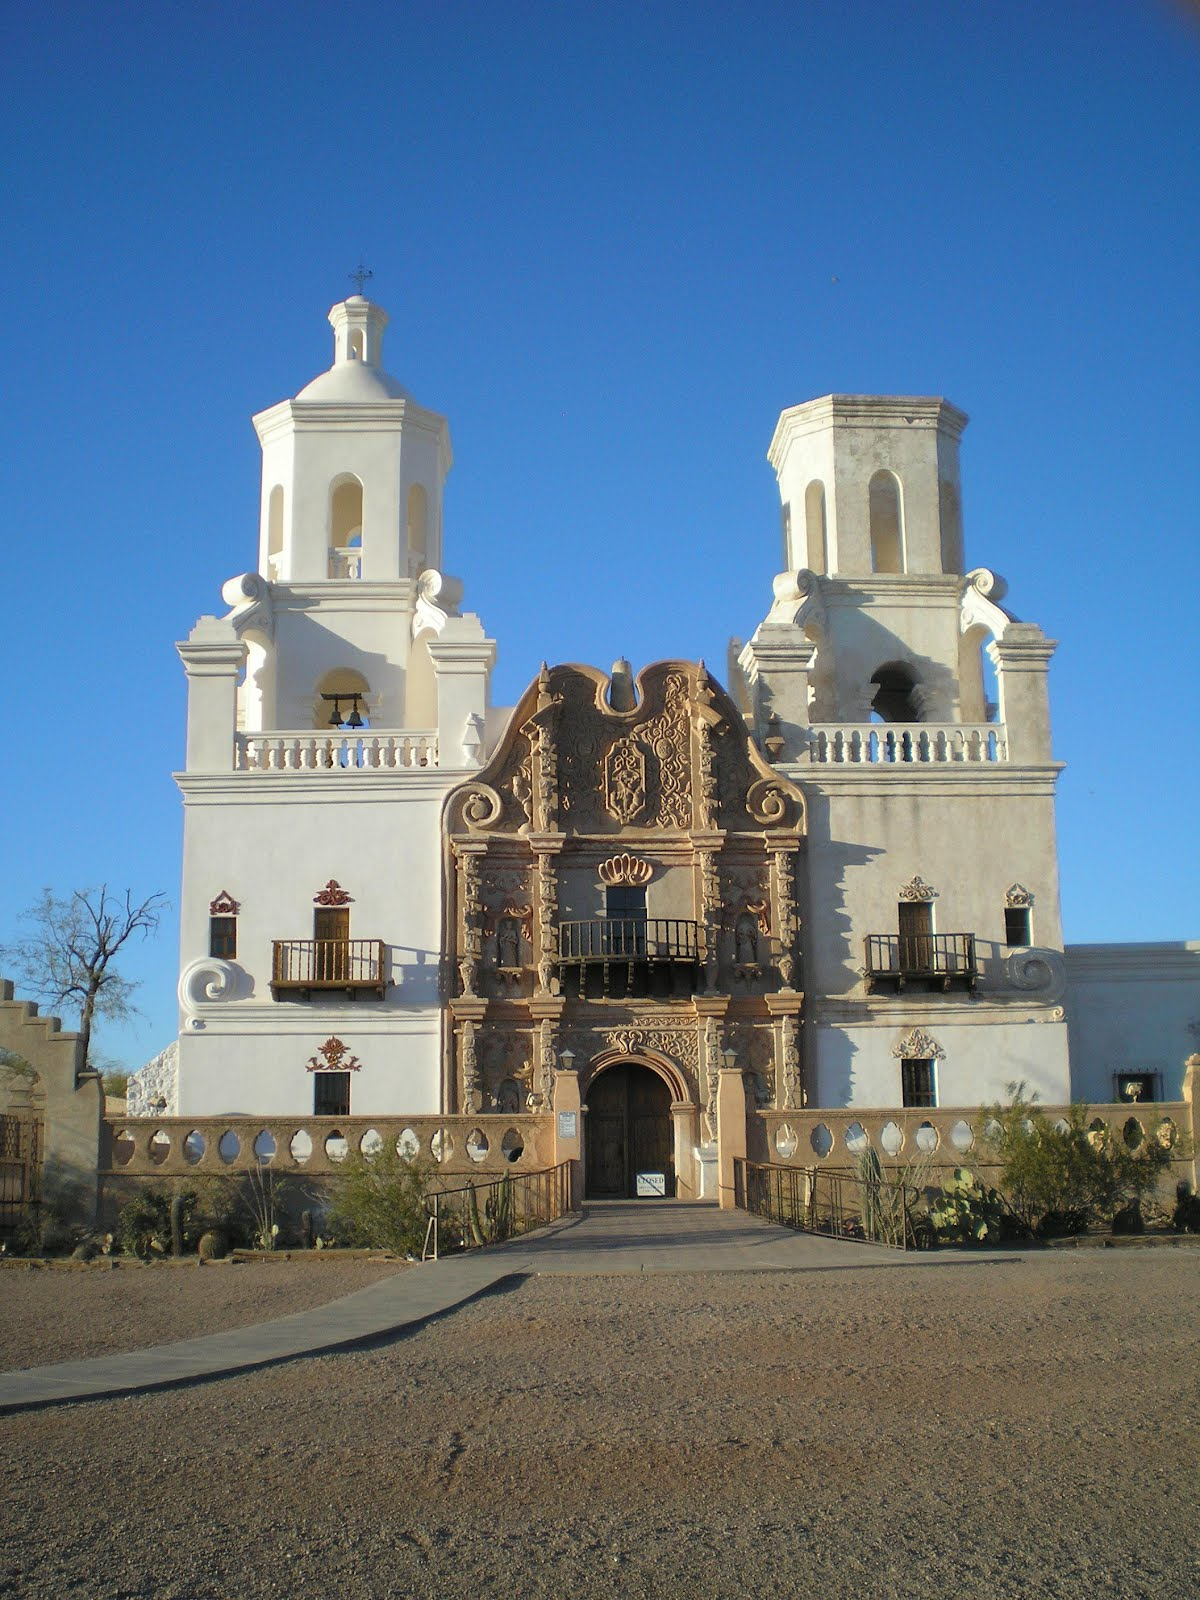 The Road Genealogist: San Xavier Mission, Tucson, AZ